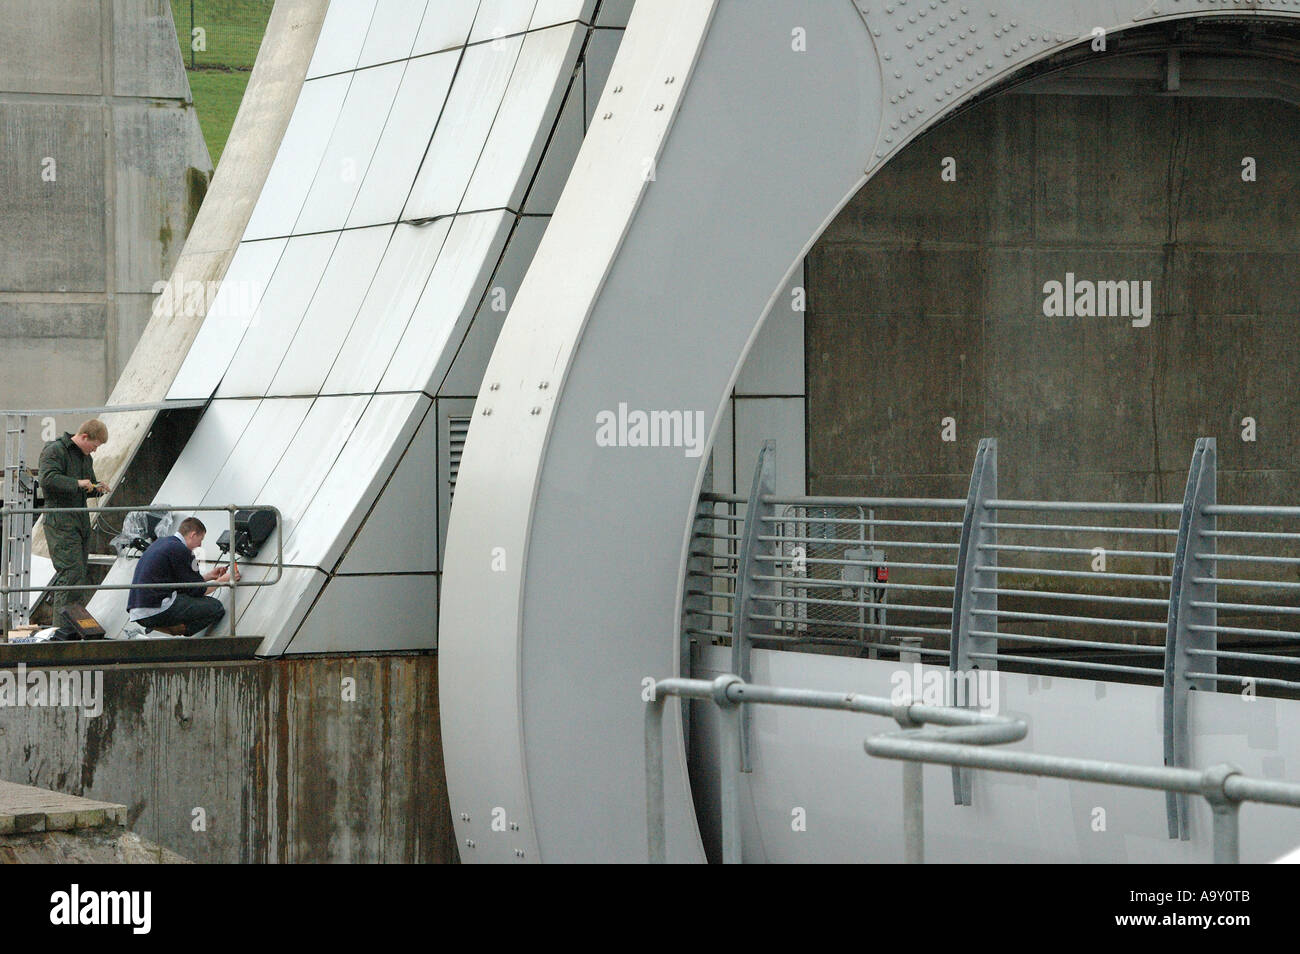 Maintenance work being carried out on the Falkirk wheel, Falkirk, central Scotland UK - Stock Image